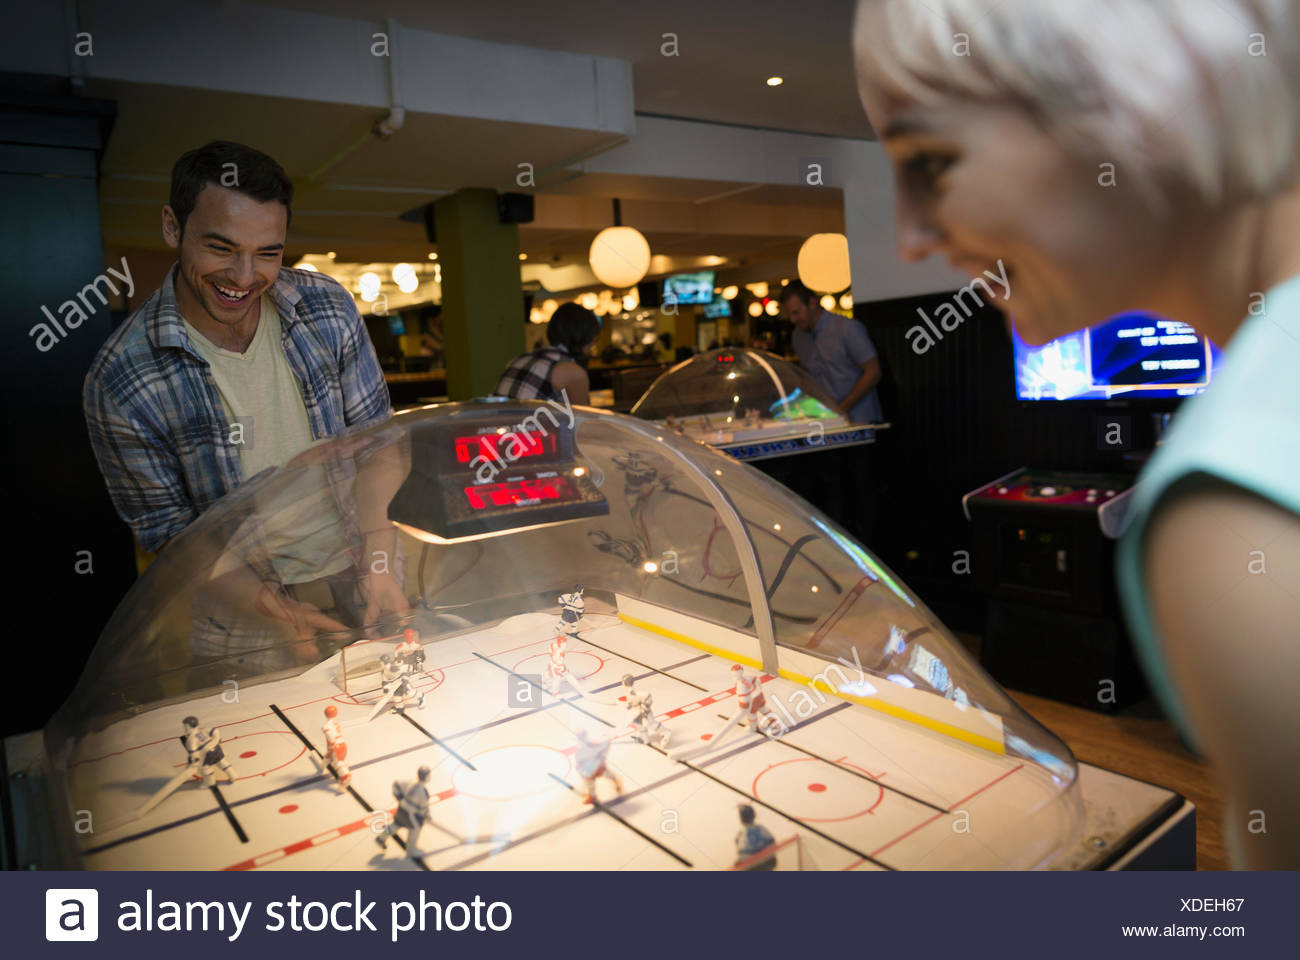 Friends playing bubble hockey game at bowling alley - Stock Image